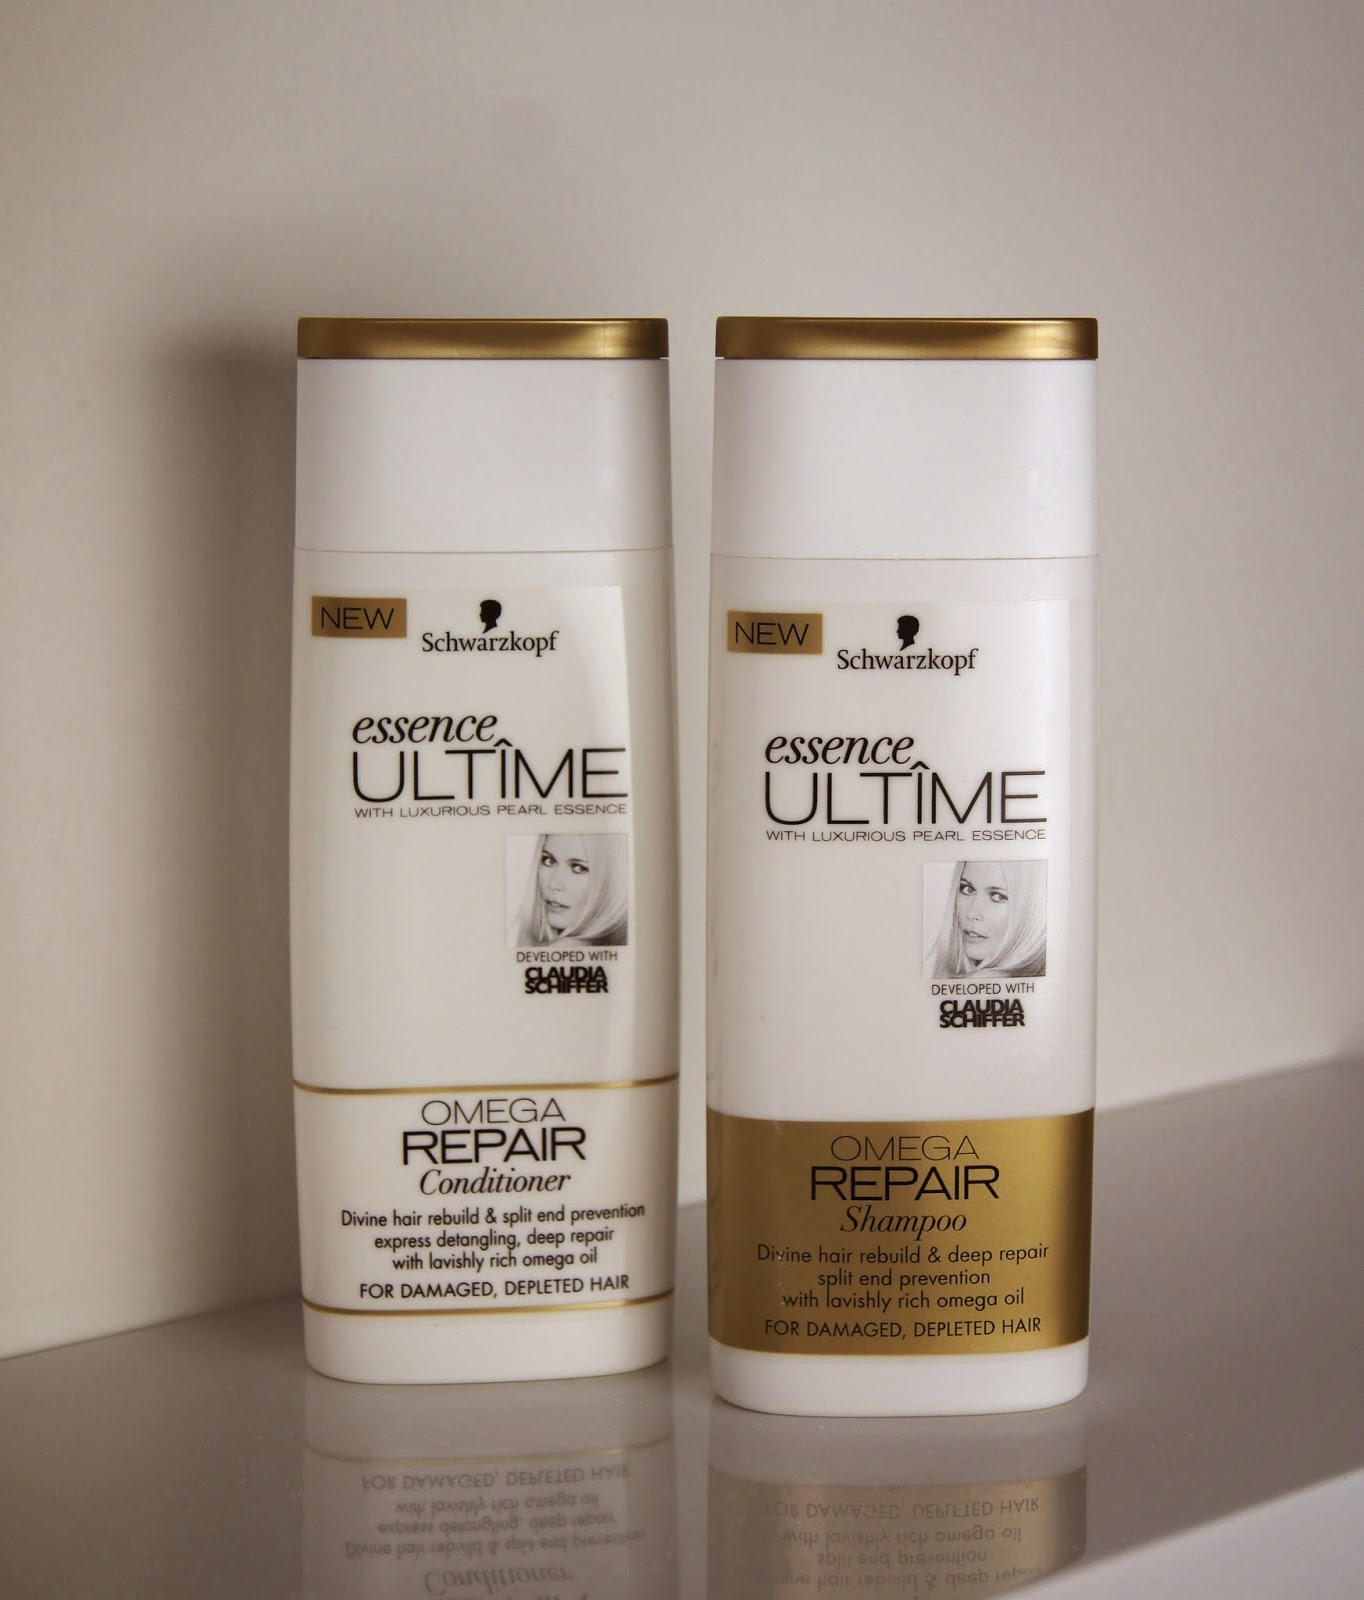 schwarzkopf essence ultime omega repair shampoo and conditioner review